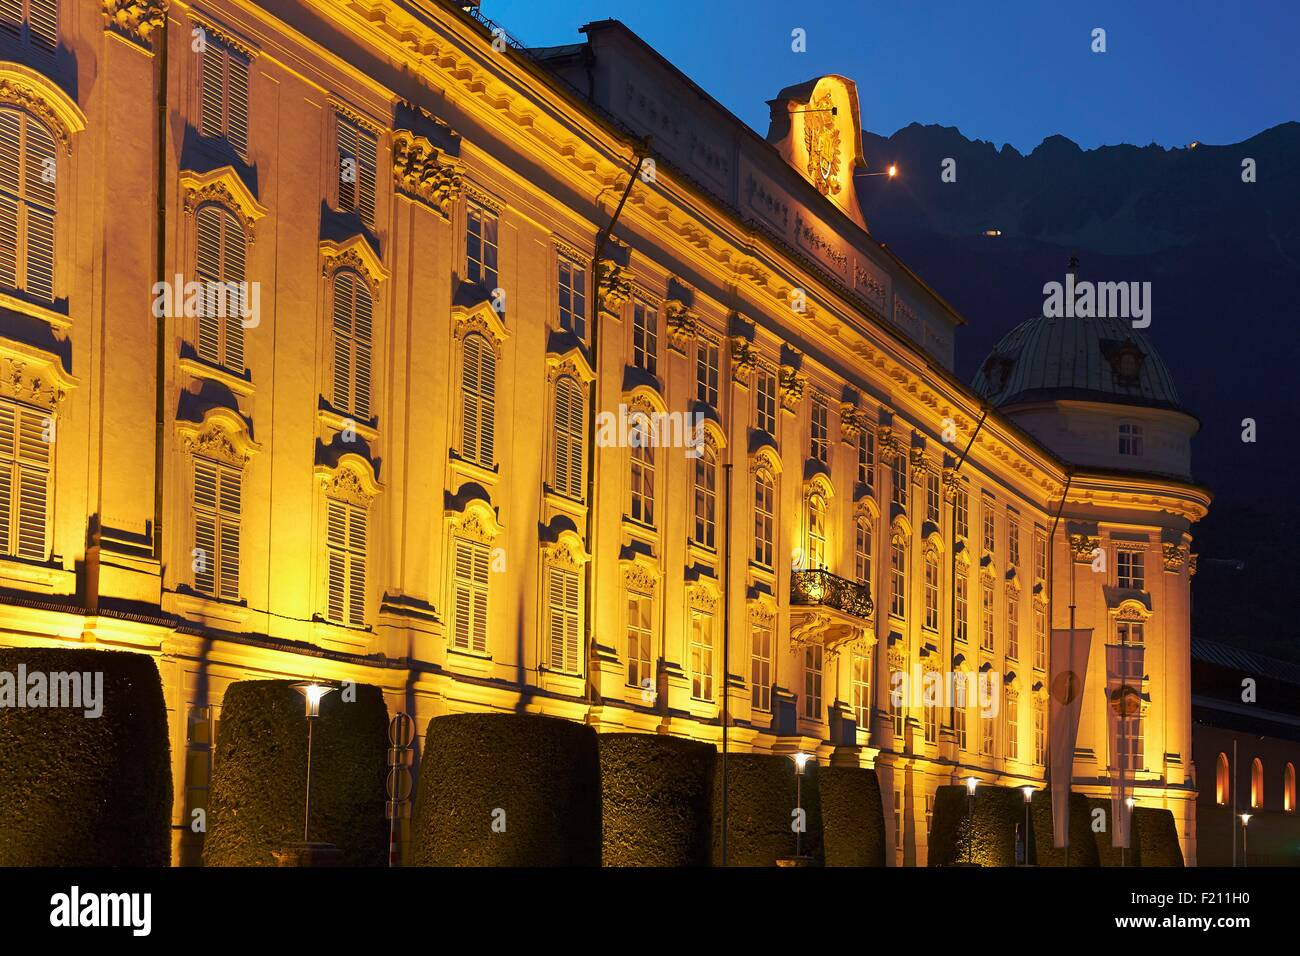 Austria, Tyrol, Innsbruck, Blue hour at the Imperial Palace Stock Photo